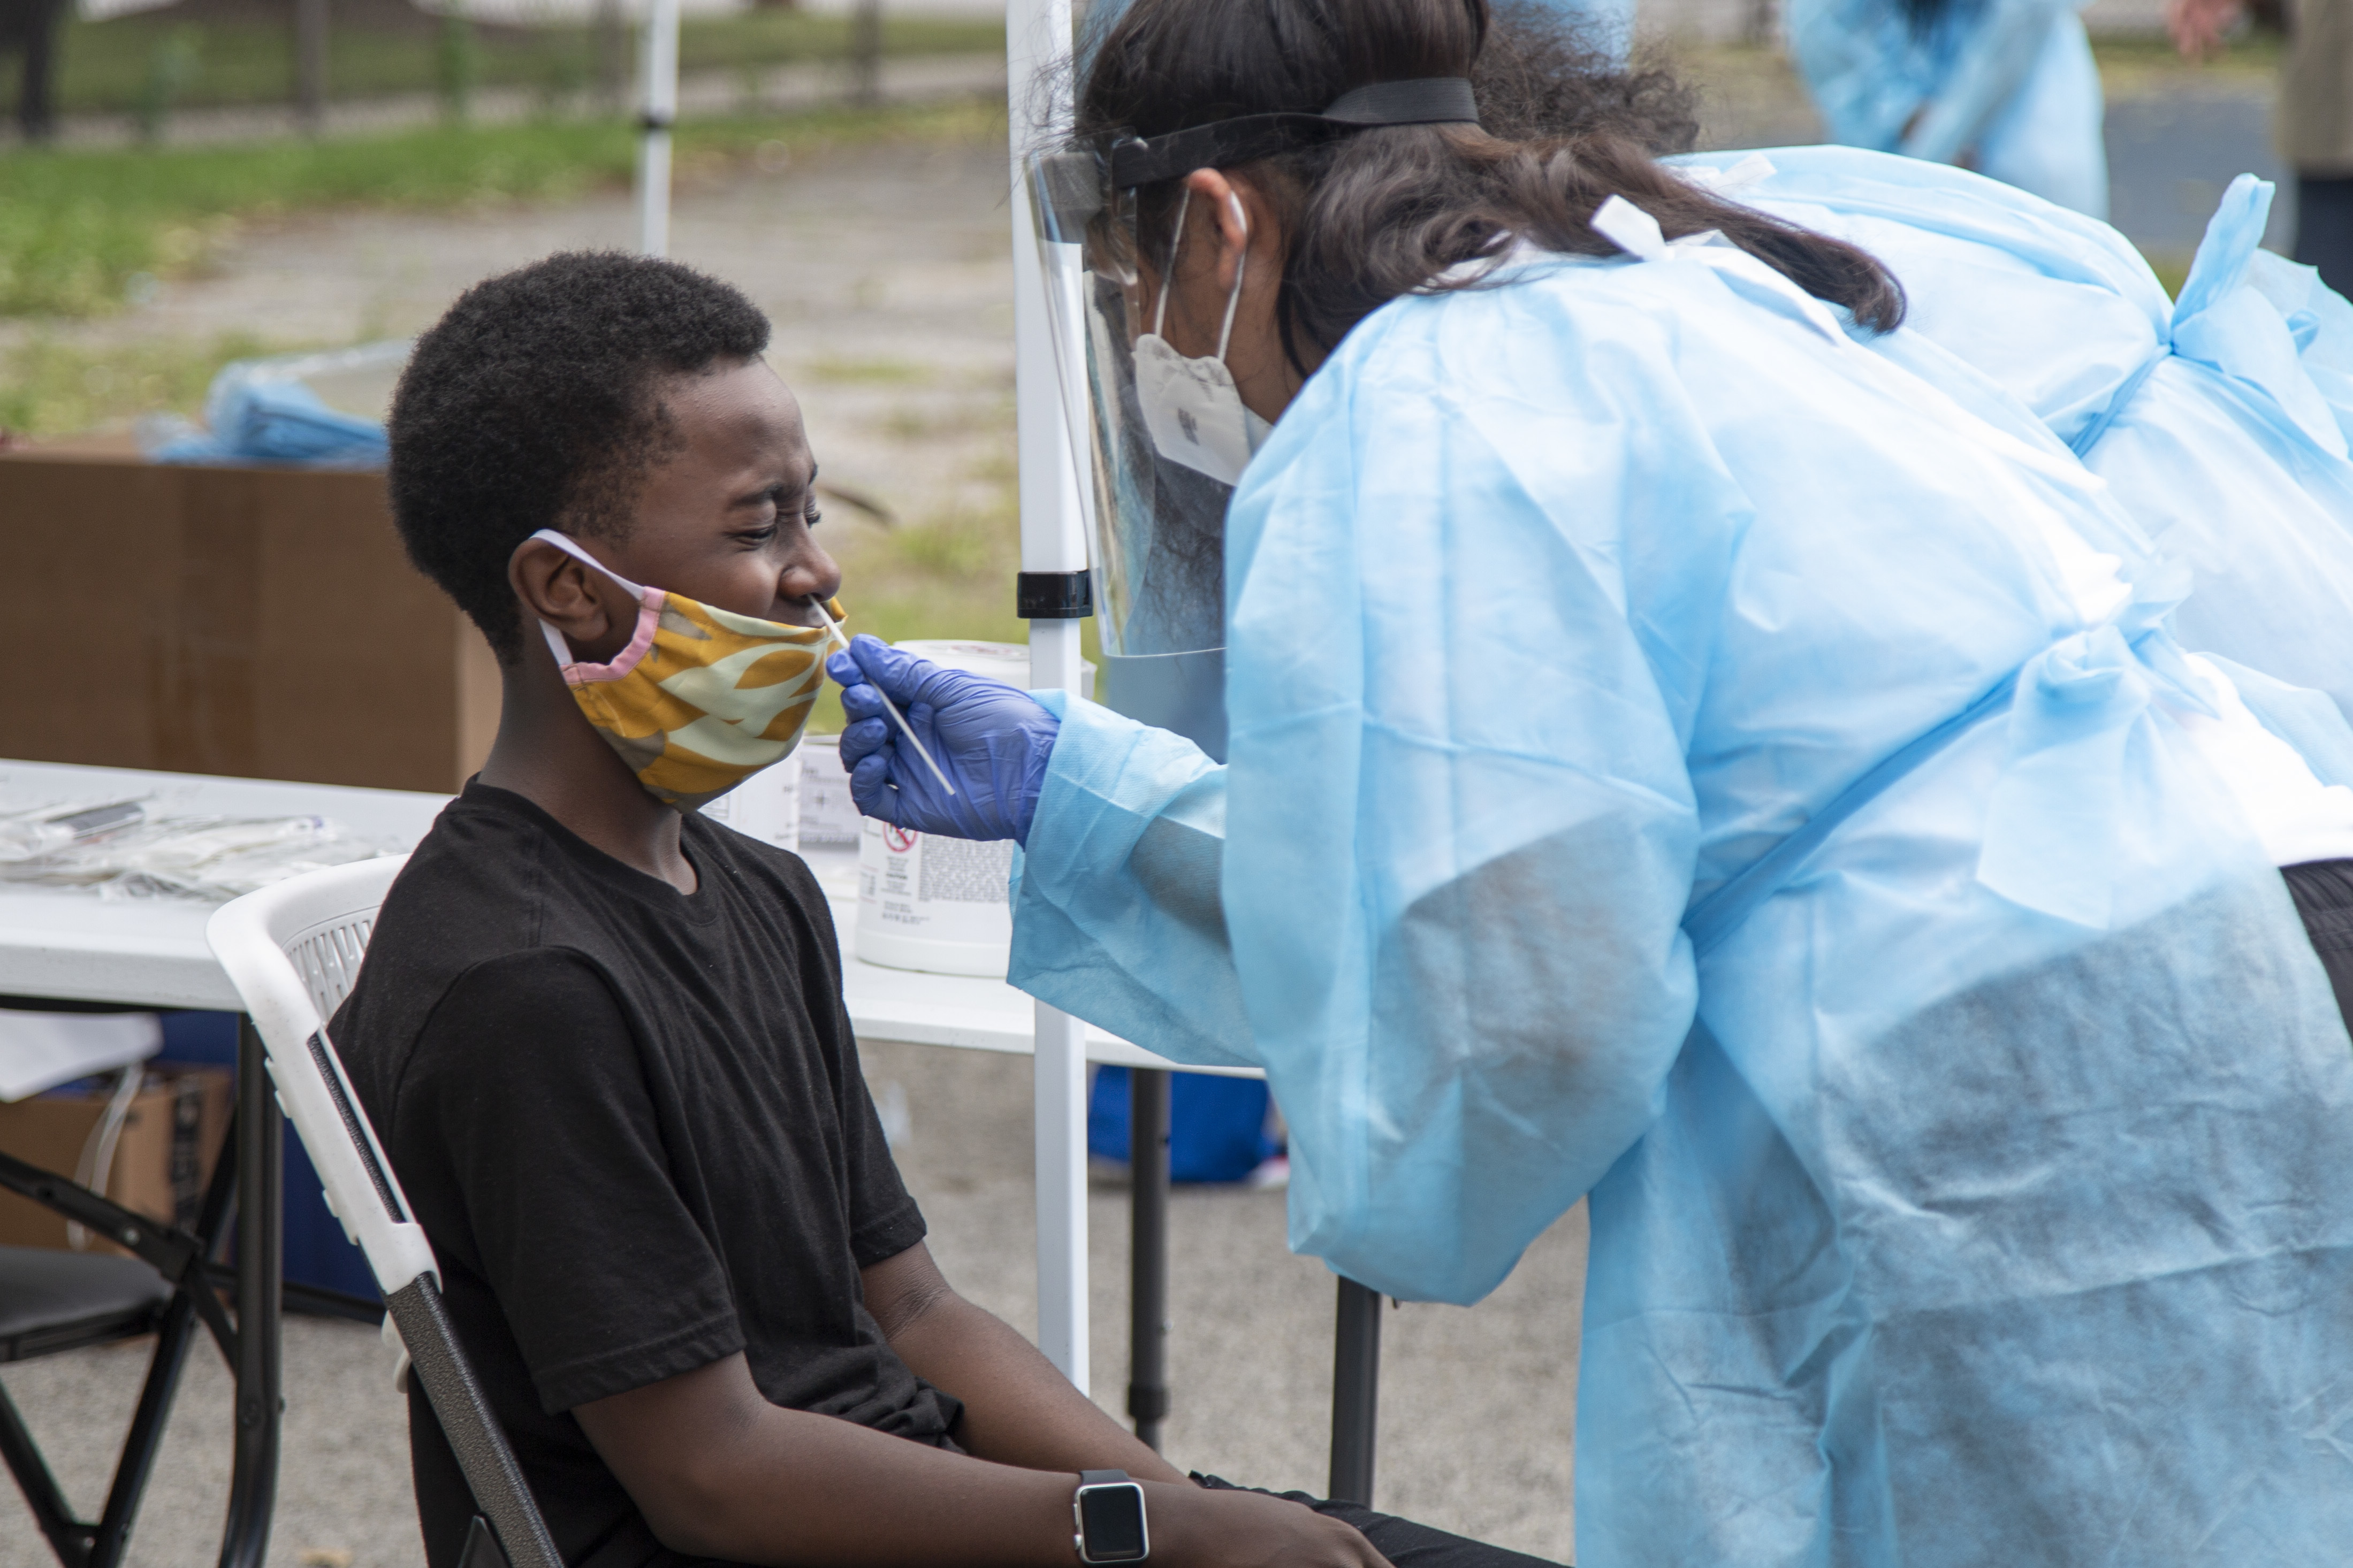 Jabari Leeper gets tested for COVID-19 at a mobile COVID-19 testing station at Edward Coles School at 8441 S. Yates Blvd. in South Chicago, Wednesday, July 8, 2020.